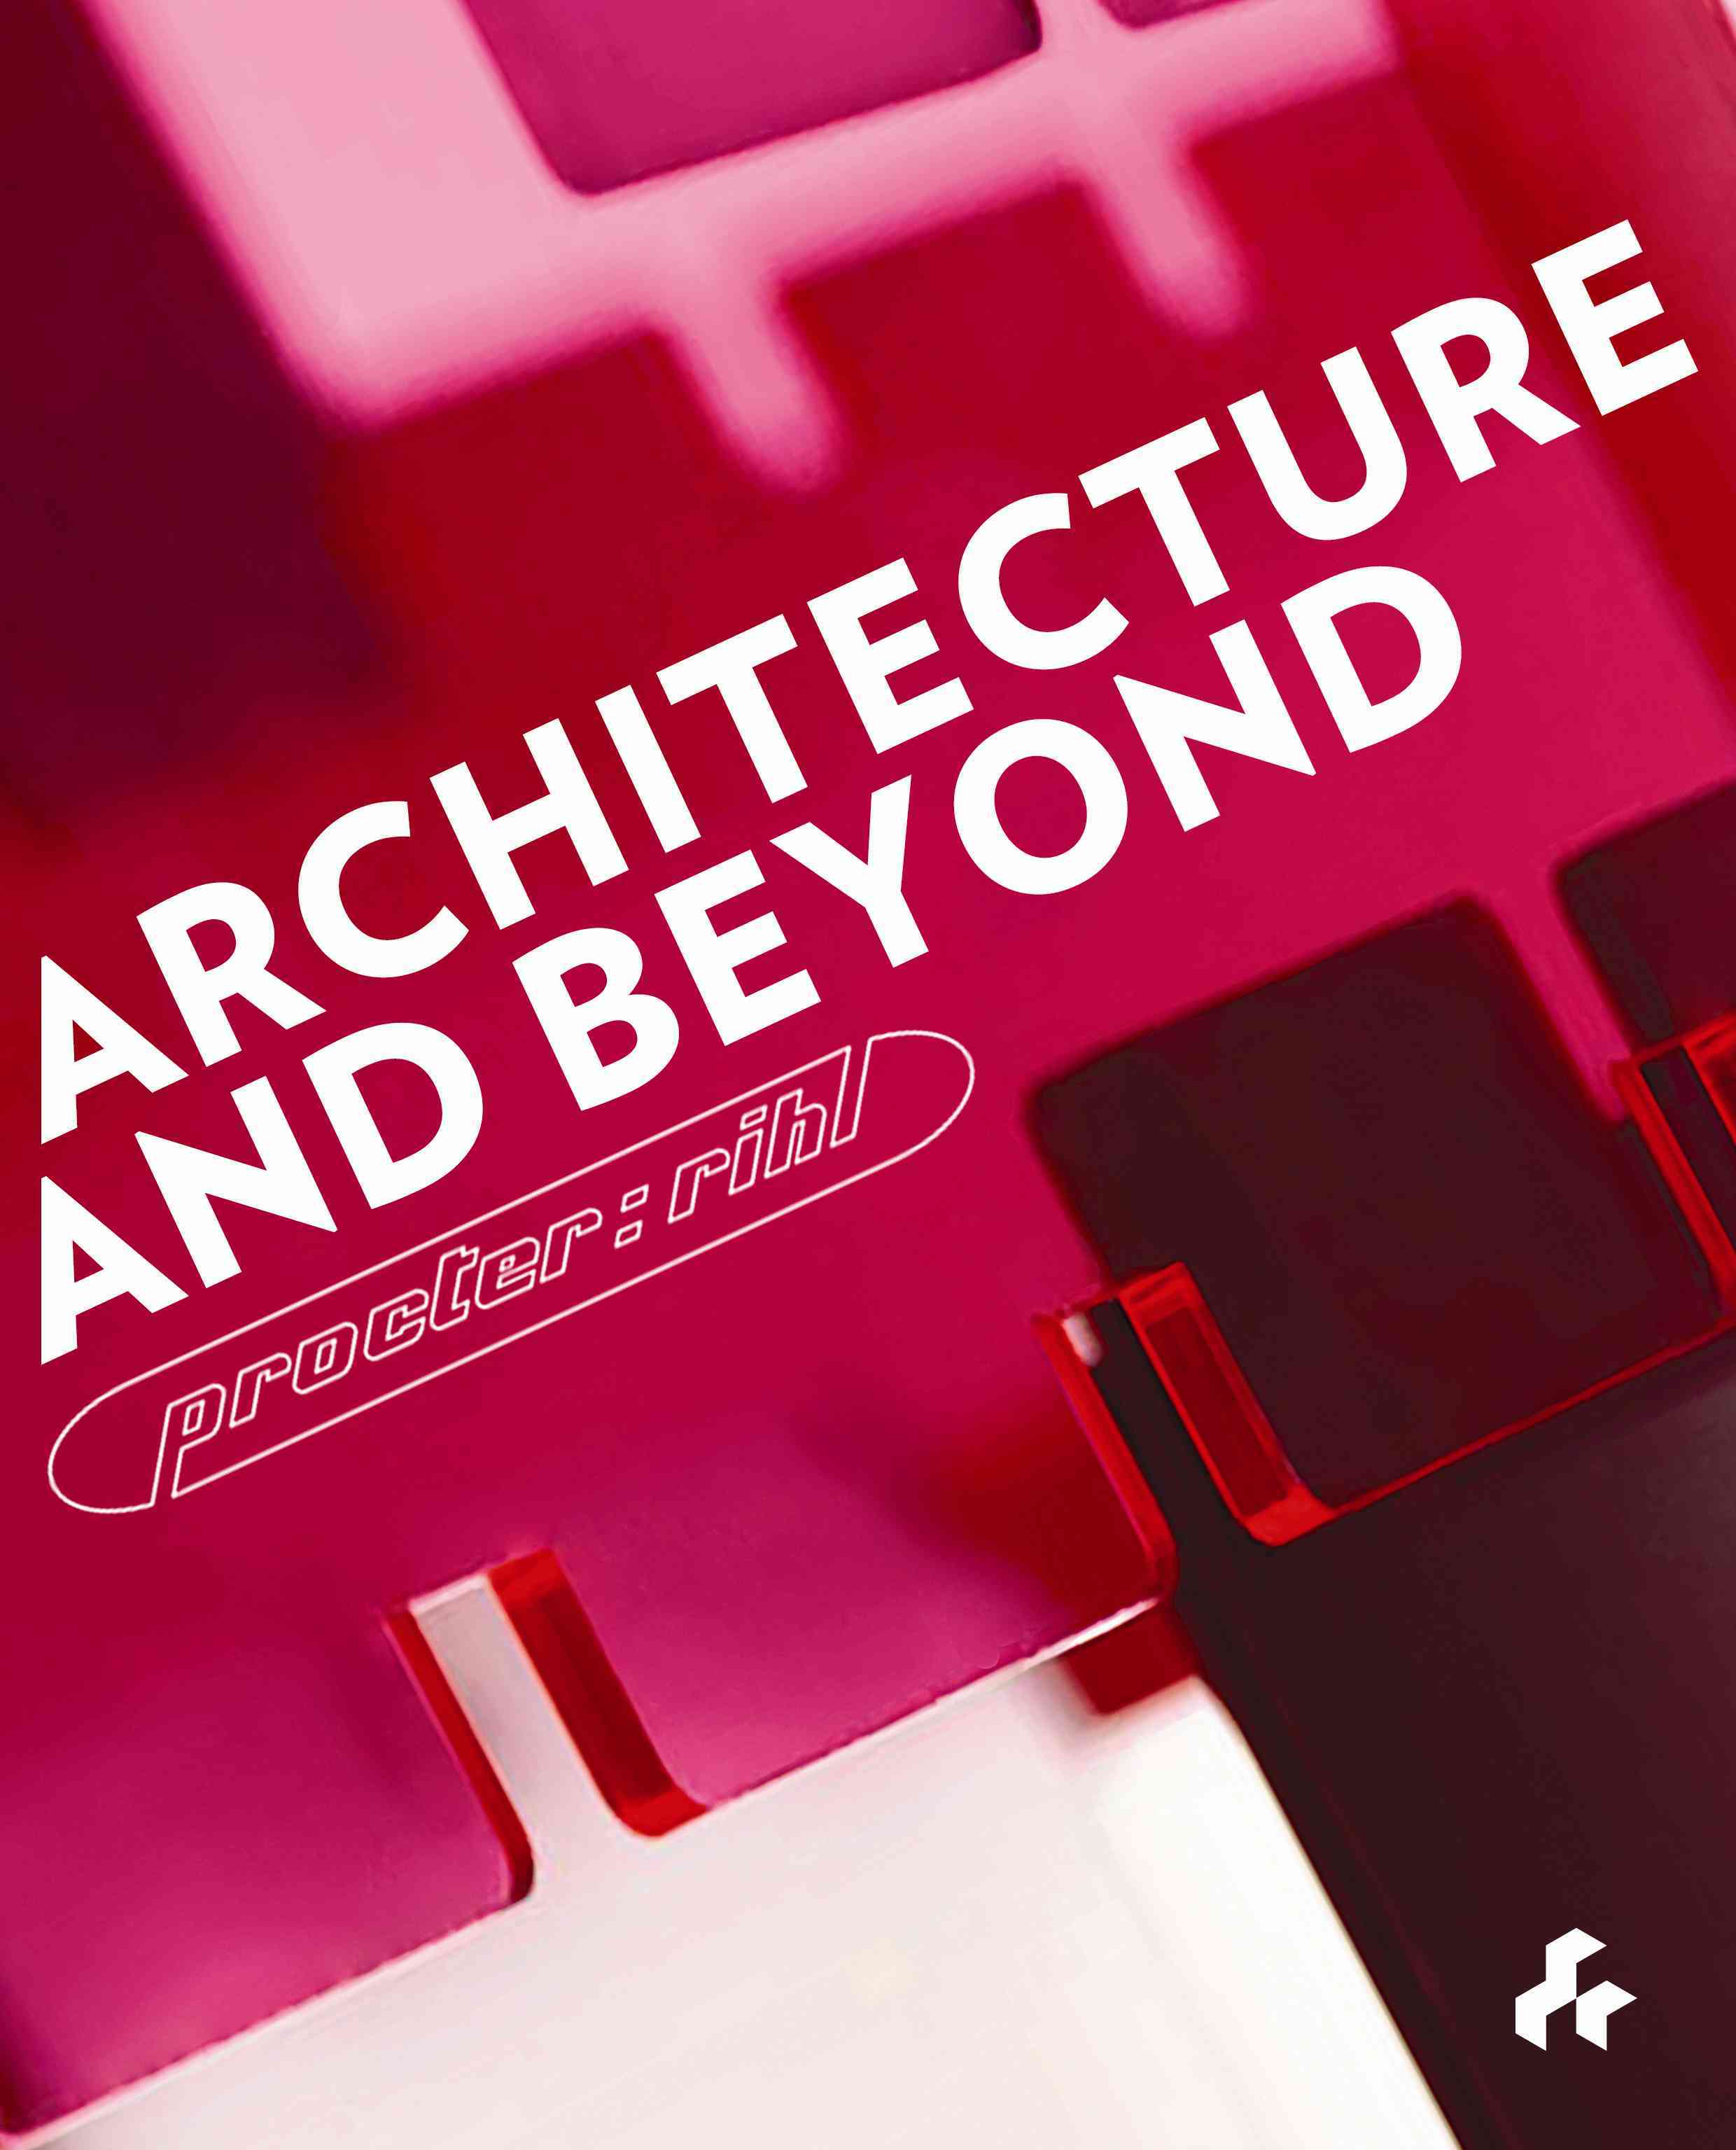 Architecture and Beyond By Procter, Christopher/ Rihl, Fernado